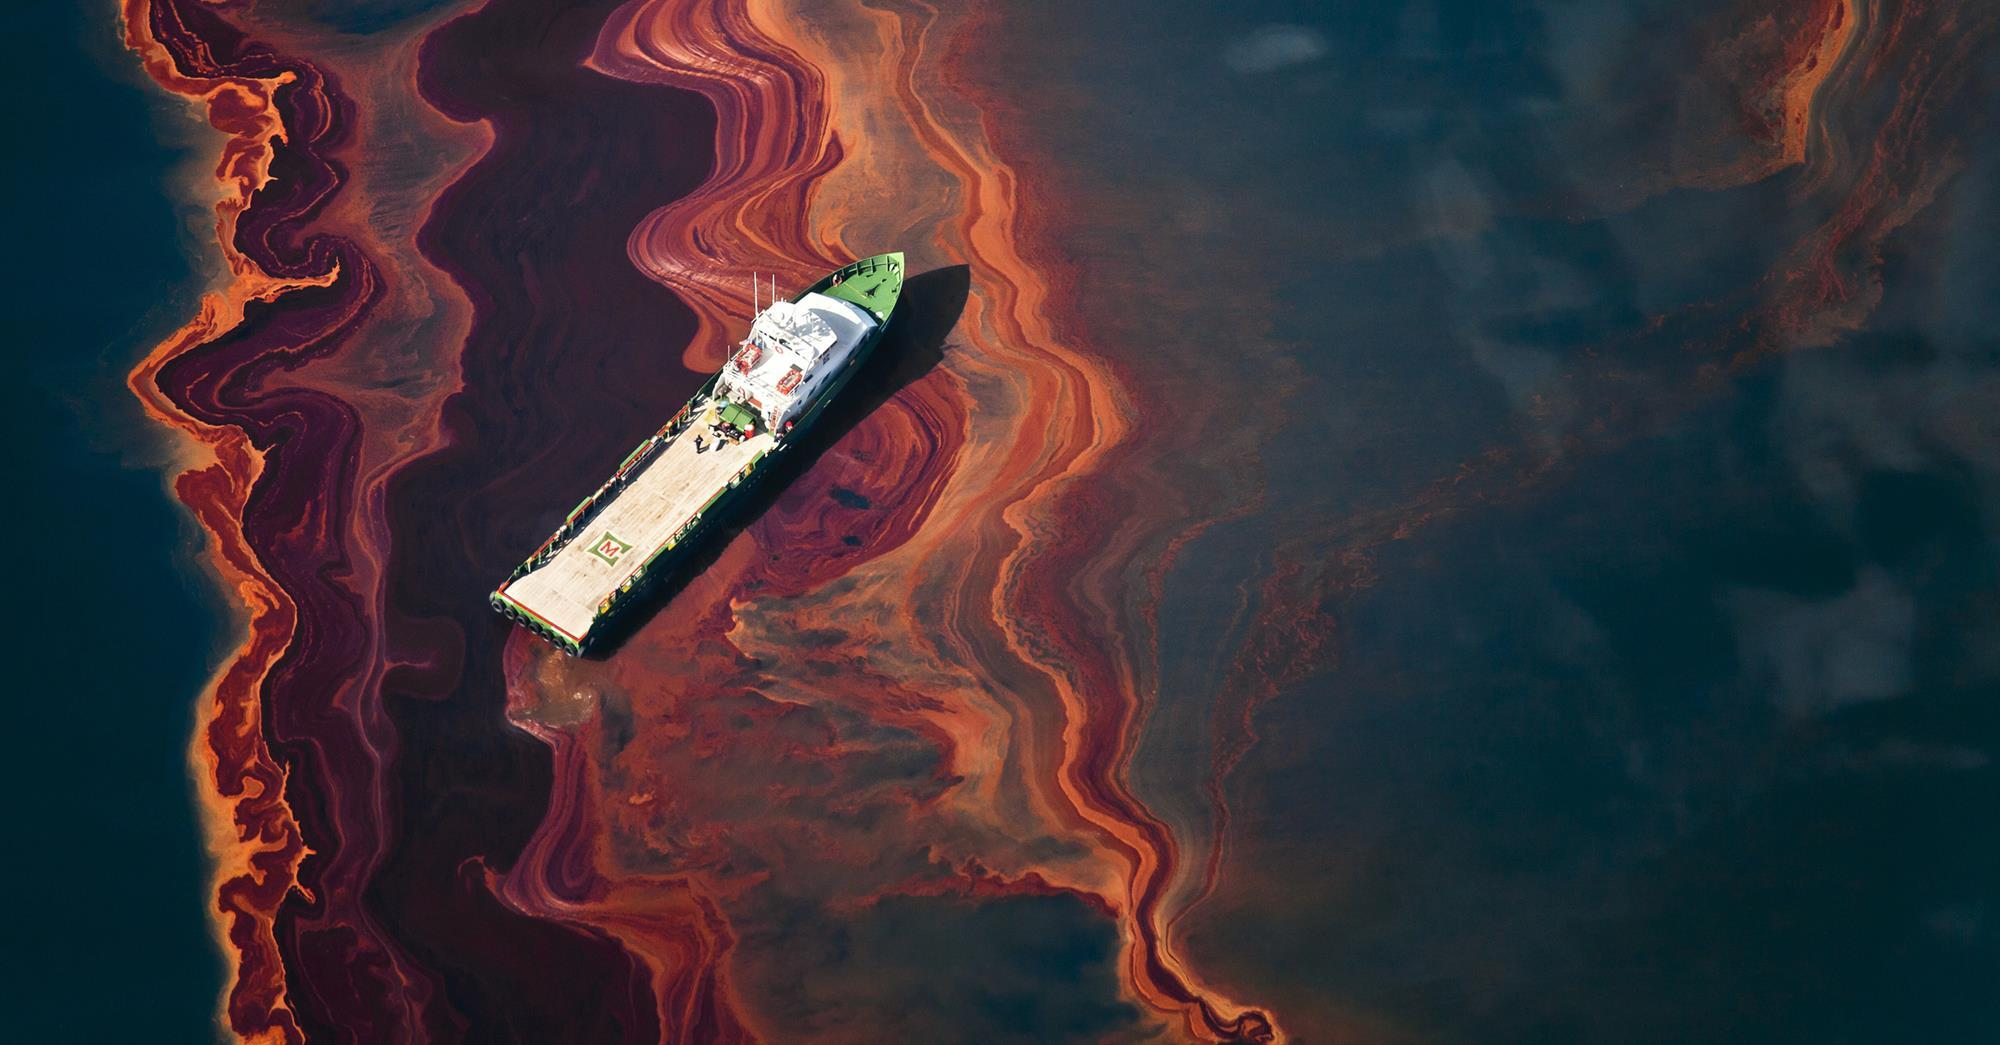 The Oil Spill & Marine Pollution